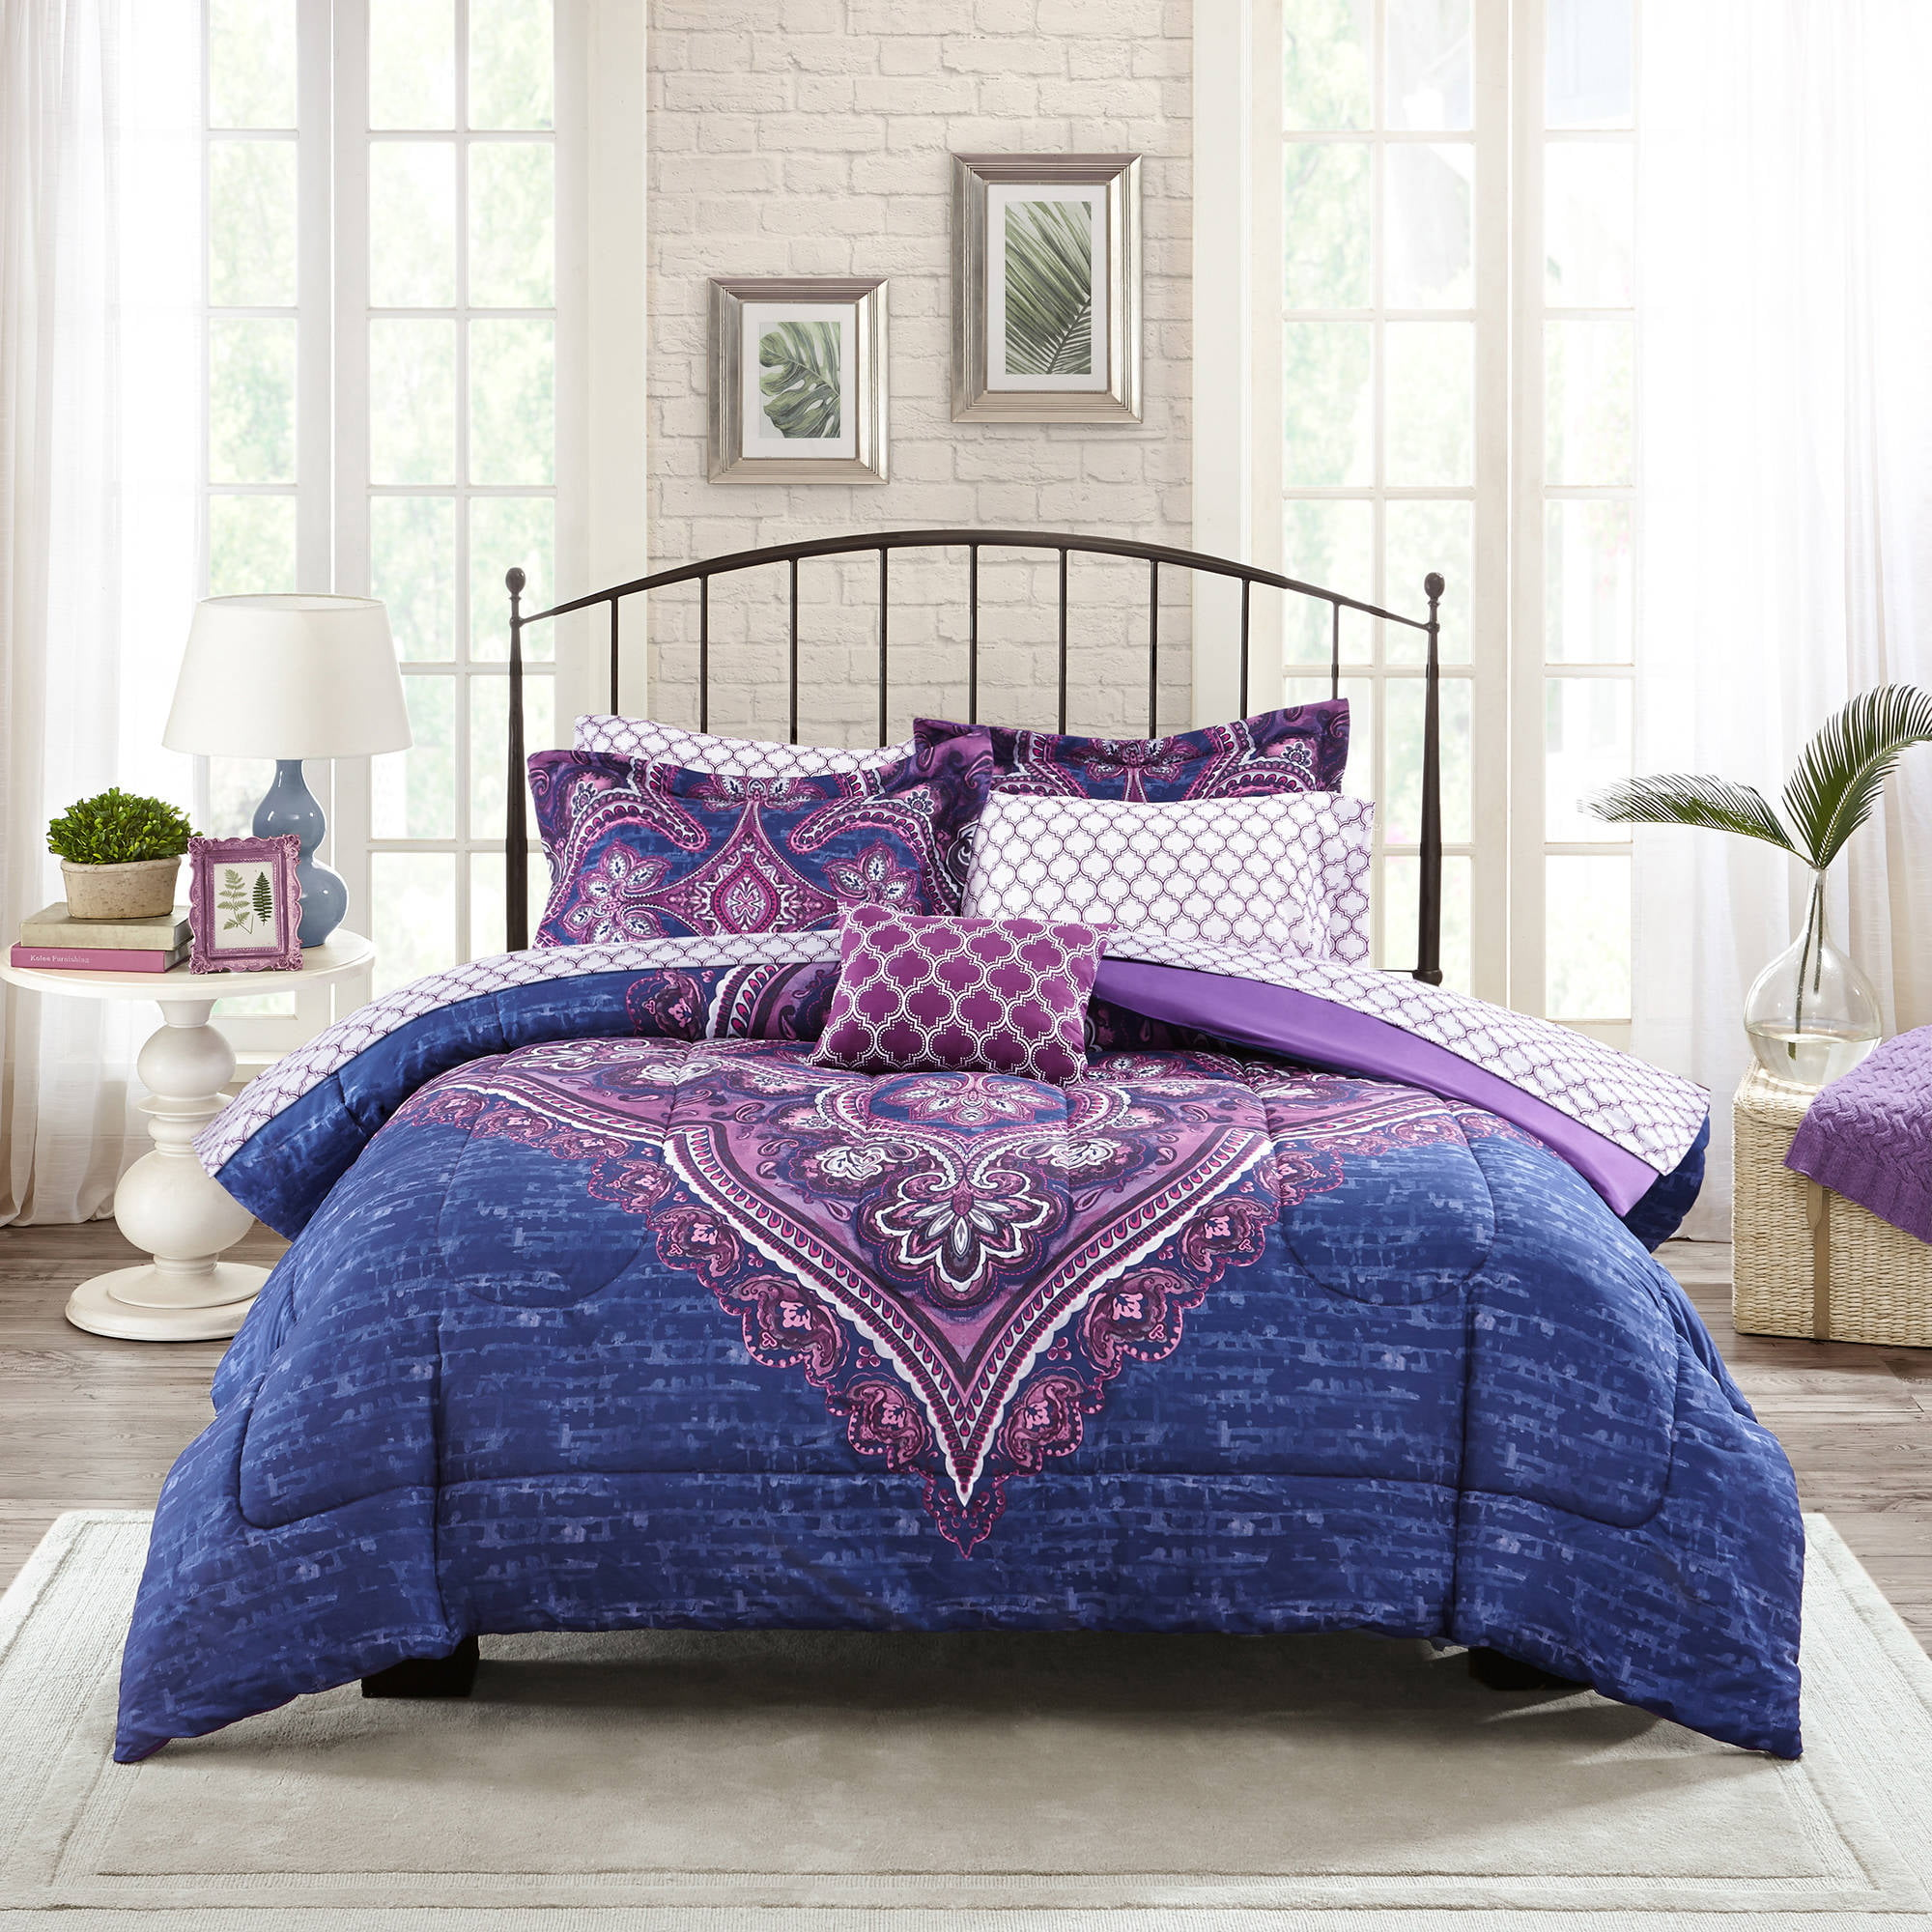 prodigious Purple Queen Size Comforter Part - 9: South Bay Down Alternative Comforter Mini Set - Walmart.com